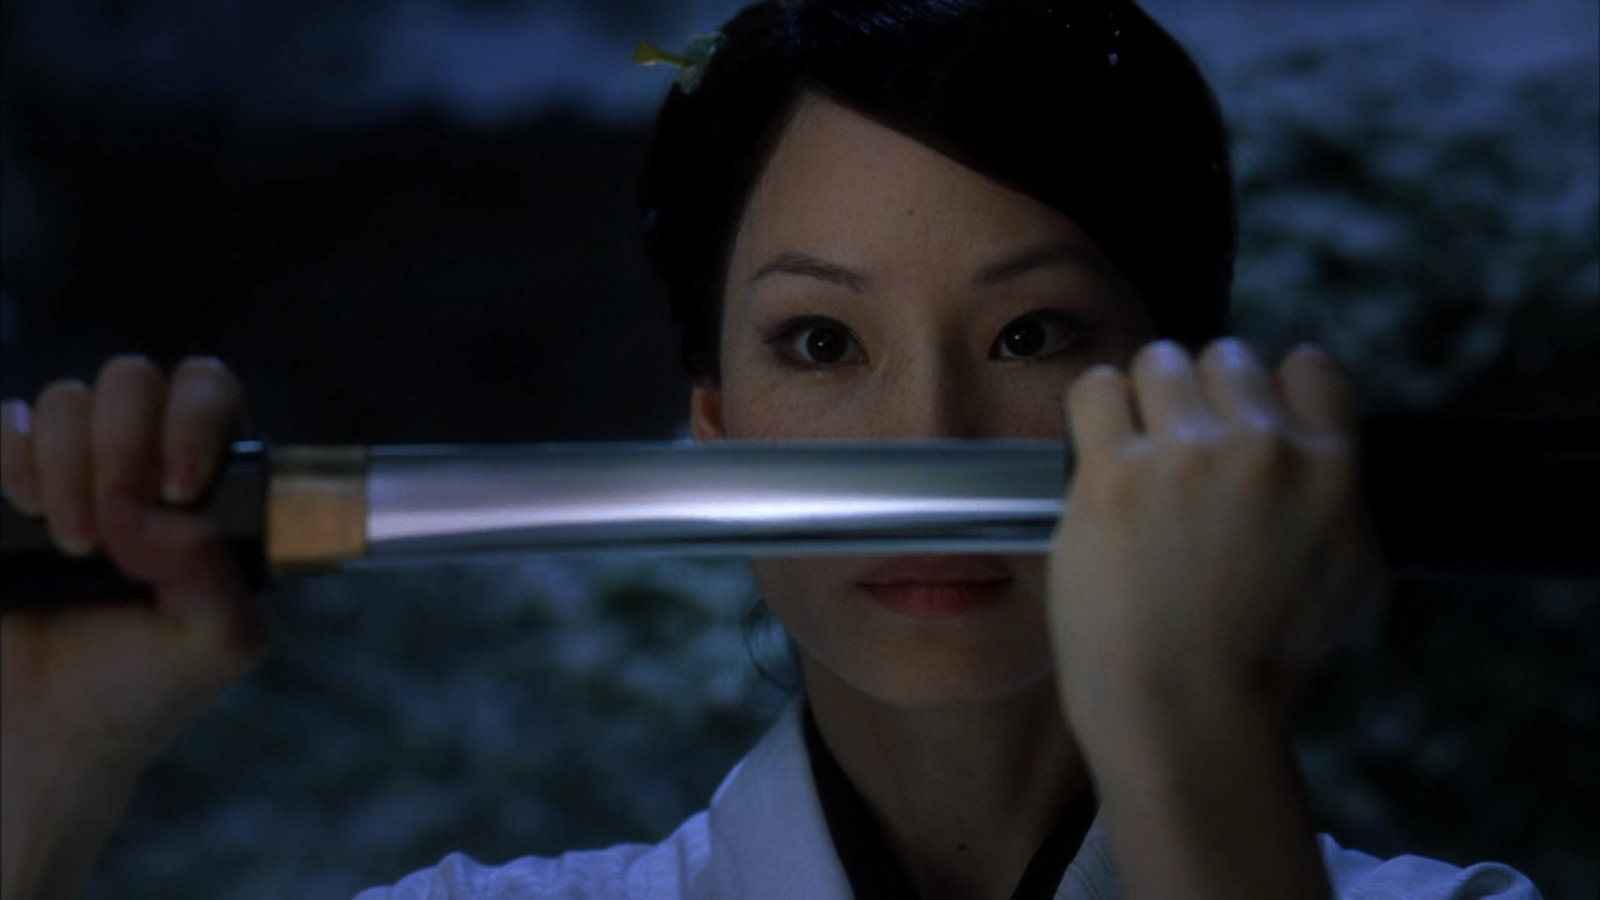 High resolution Kill Bill hd 1600x900 wallpaper ID:315496 for desktop